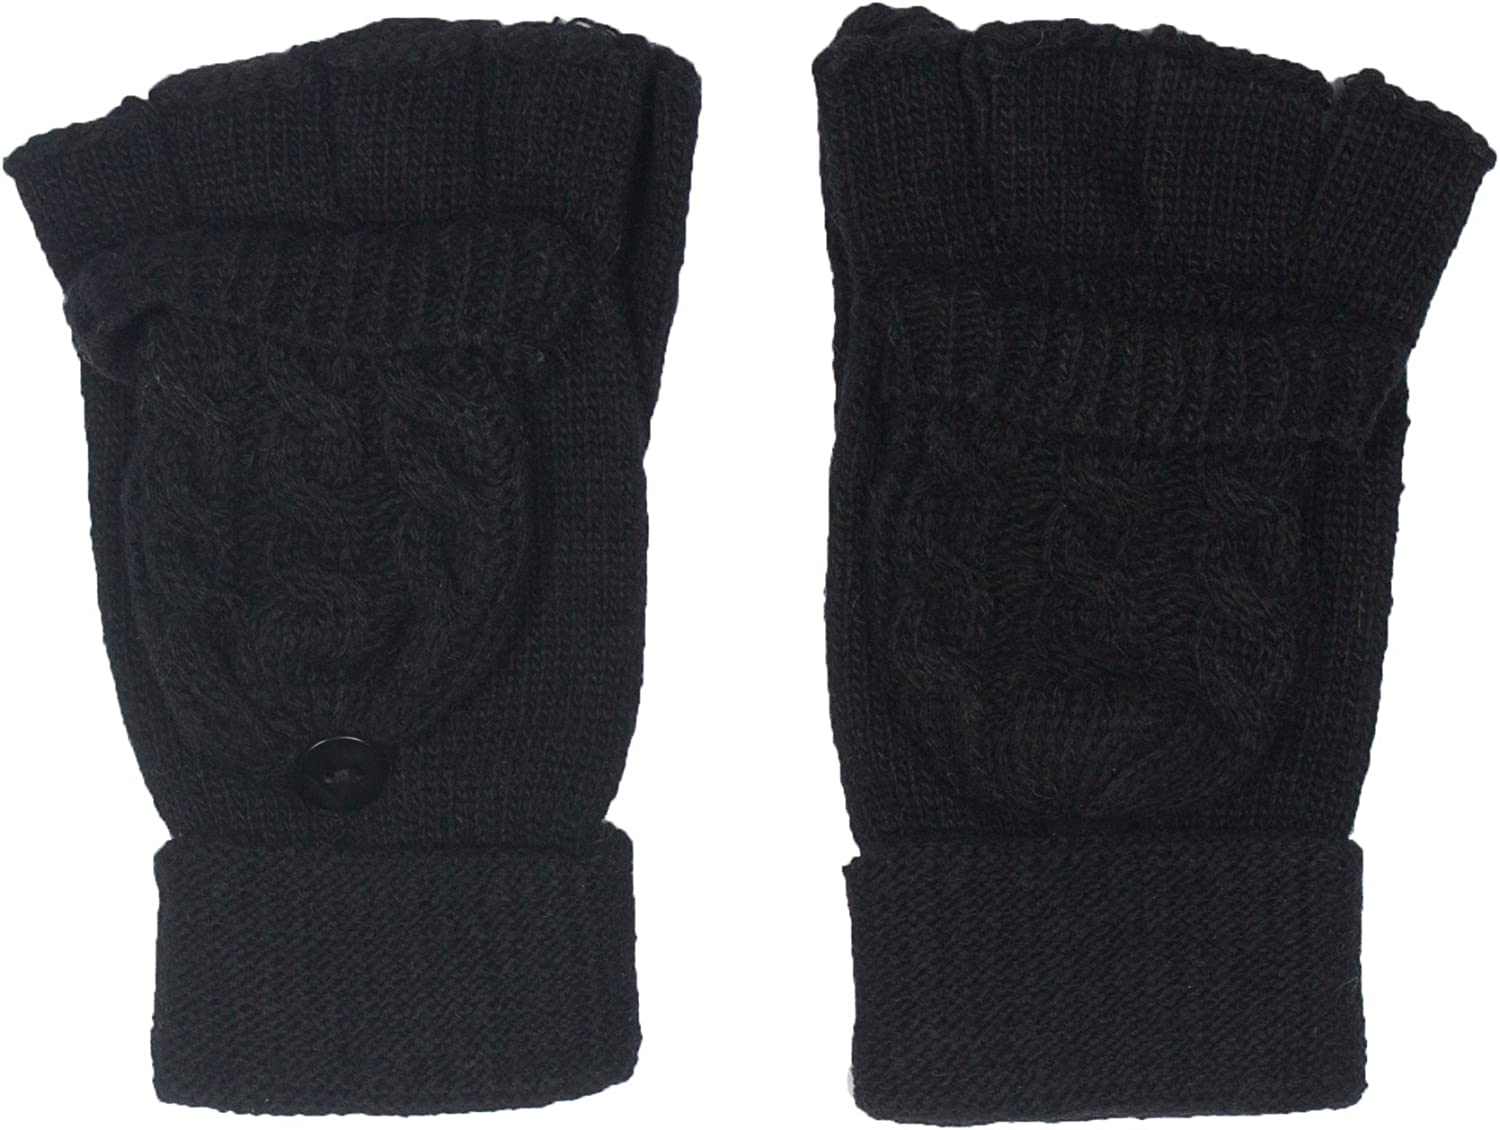 DRY77 Fingerless Mitten Flap Knit Cable Gloves Women Winter Cold Warm Fashion